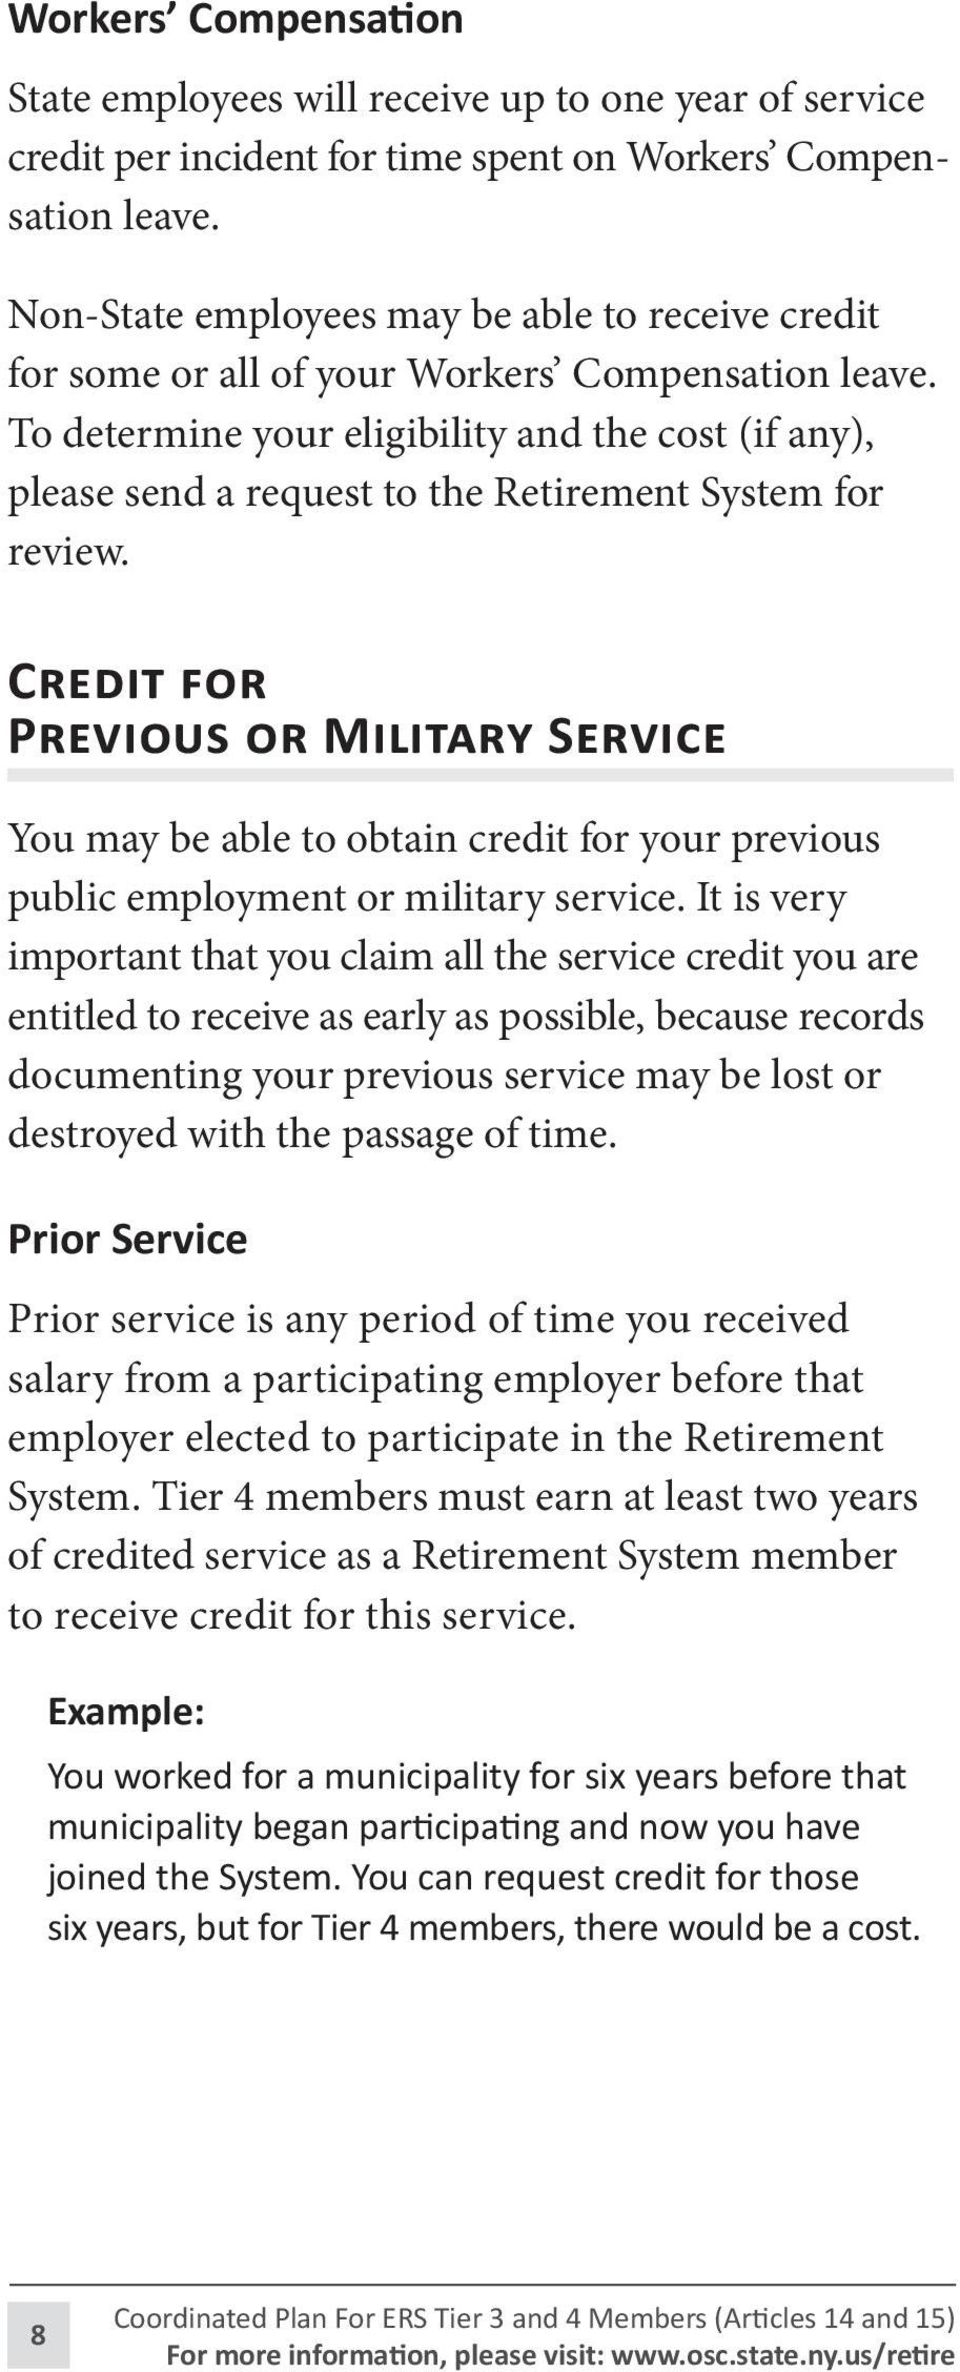 To determine your eligibility and the cost (if any), please send a request to the Retirement System for review.